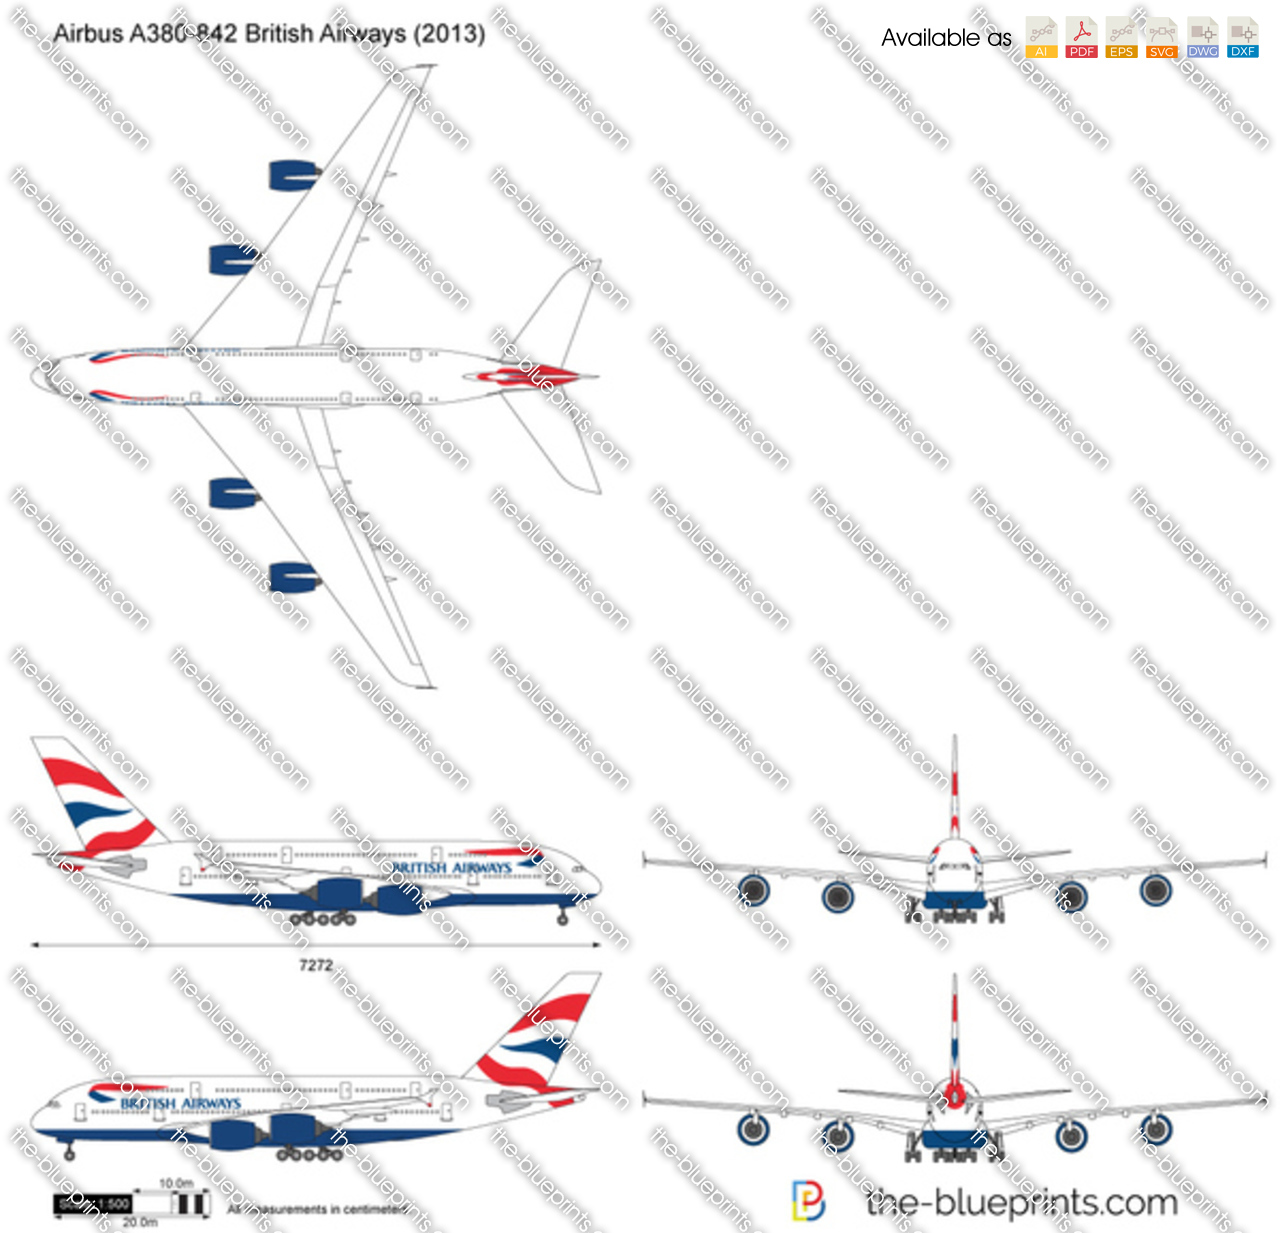 Airbus A380-842 British Airways 2014